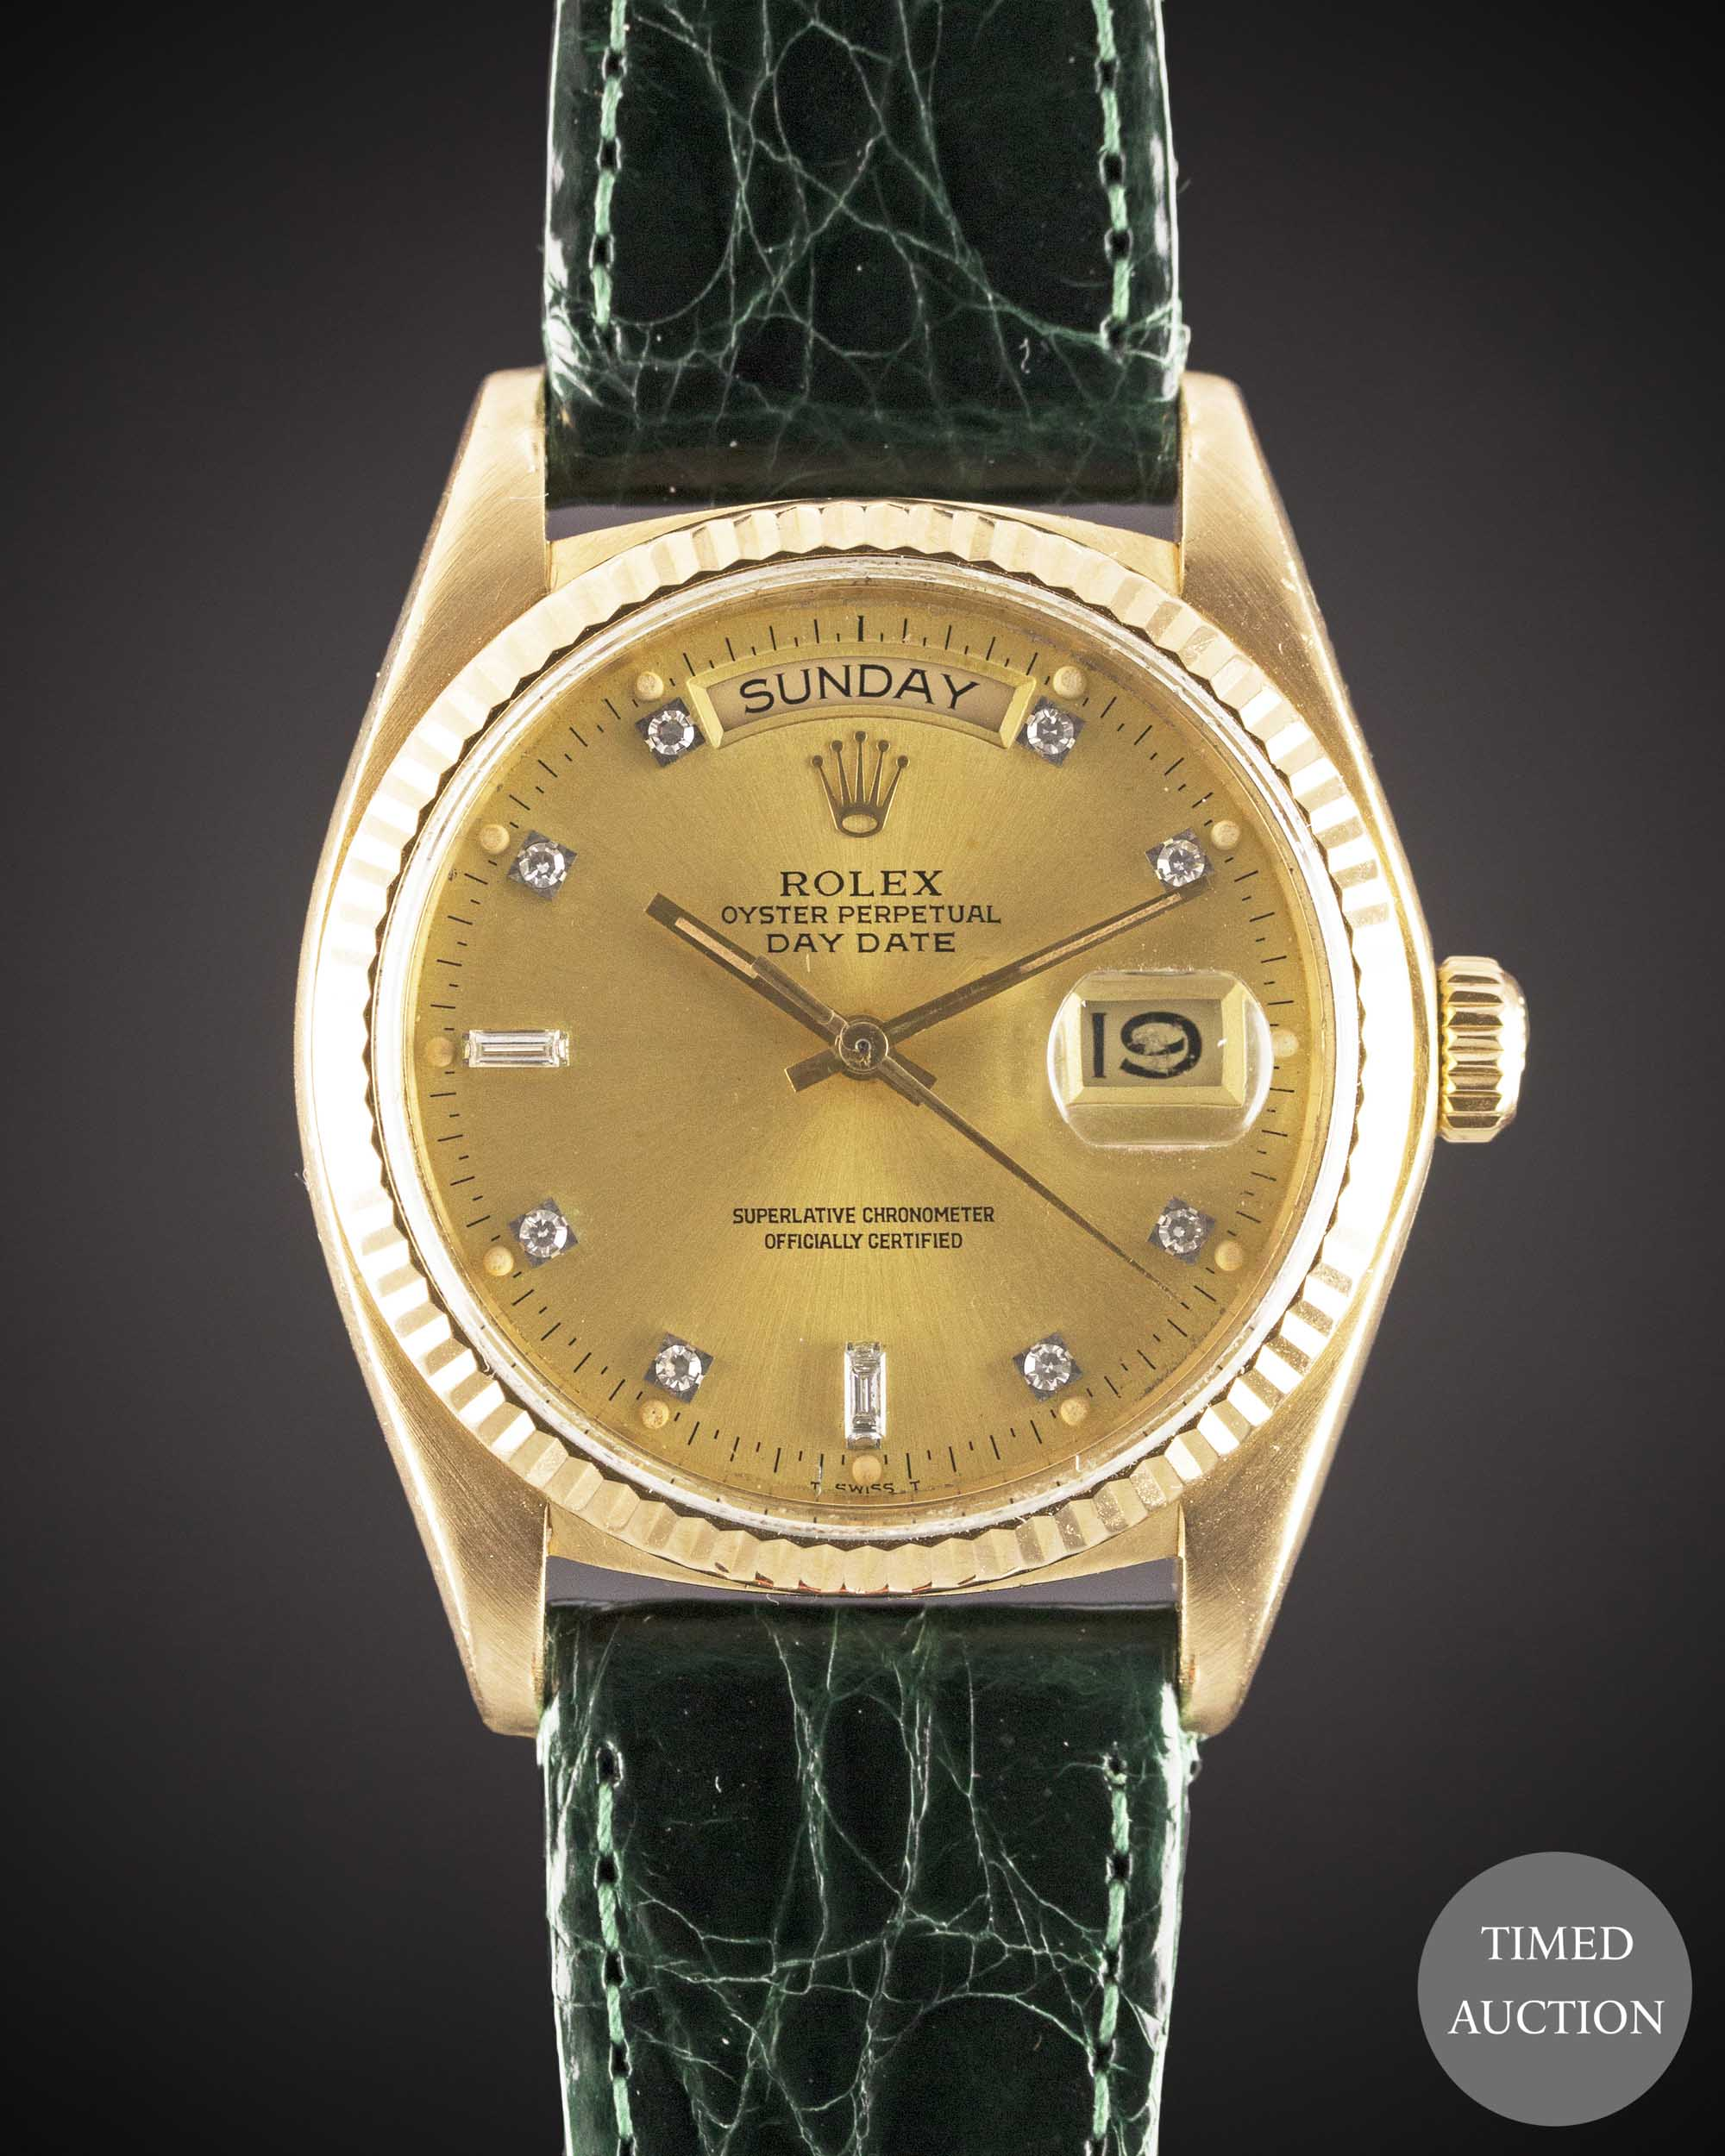 Lot 29 - A GENTLEMAN'S 18K SOLID YELLOW GOLD ROLEX OYSTER PERPETUAL DAY DATE WRIST WATCH CIRCA 1984, REF.